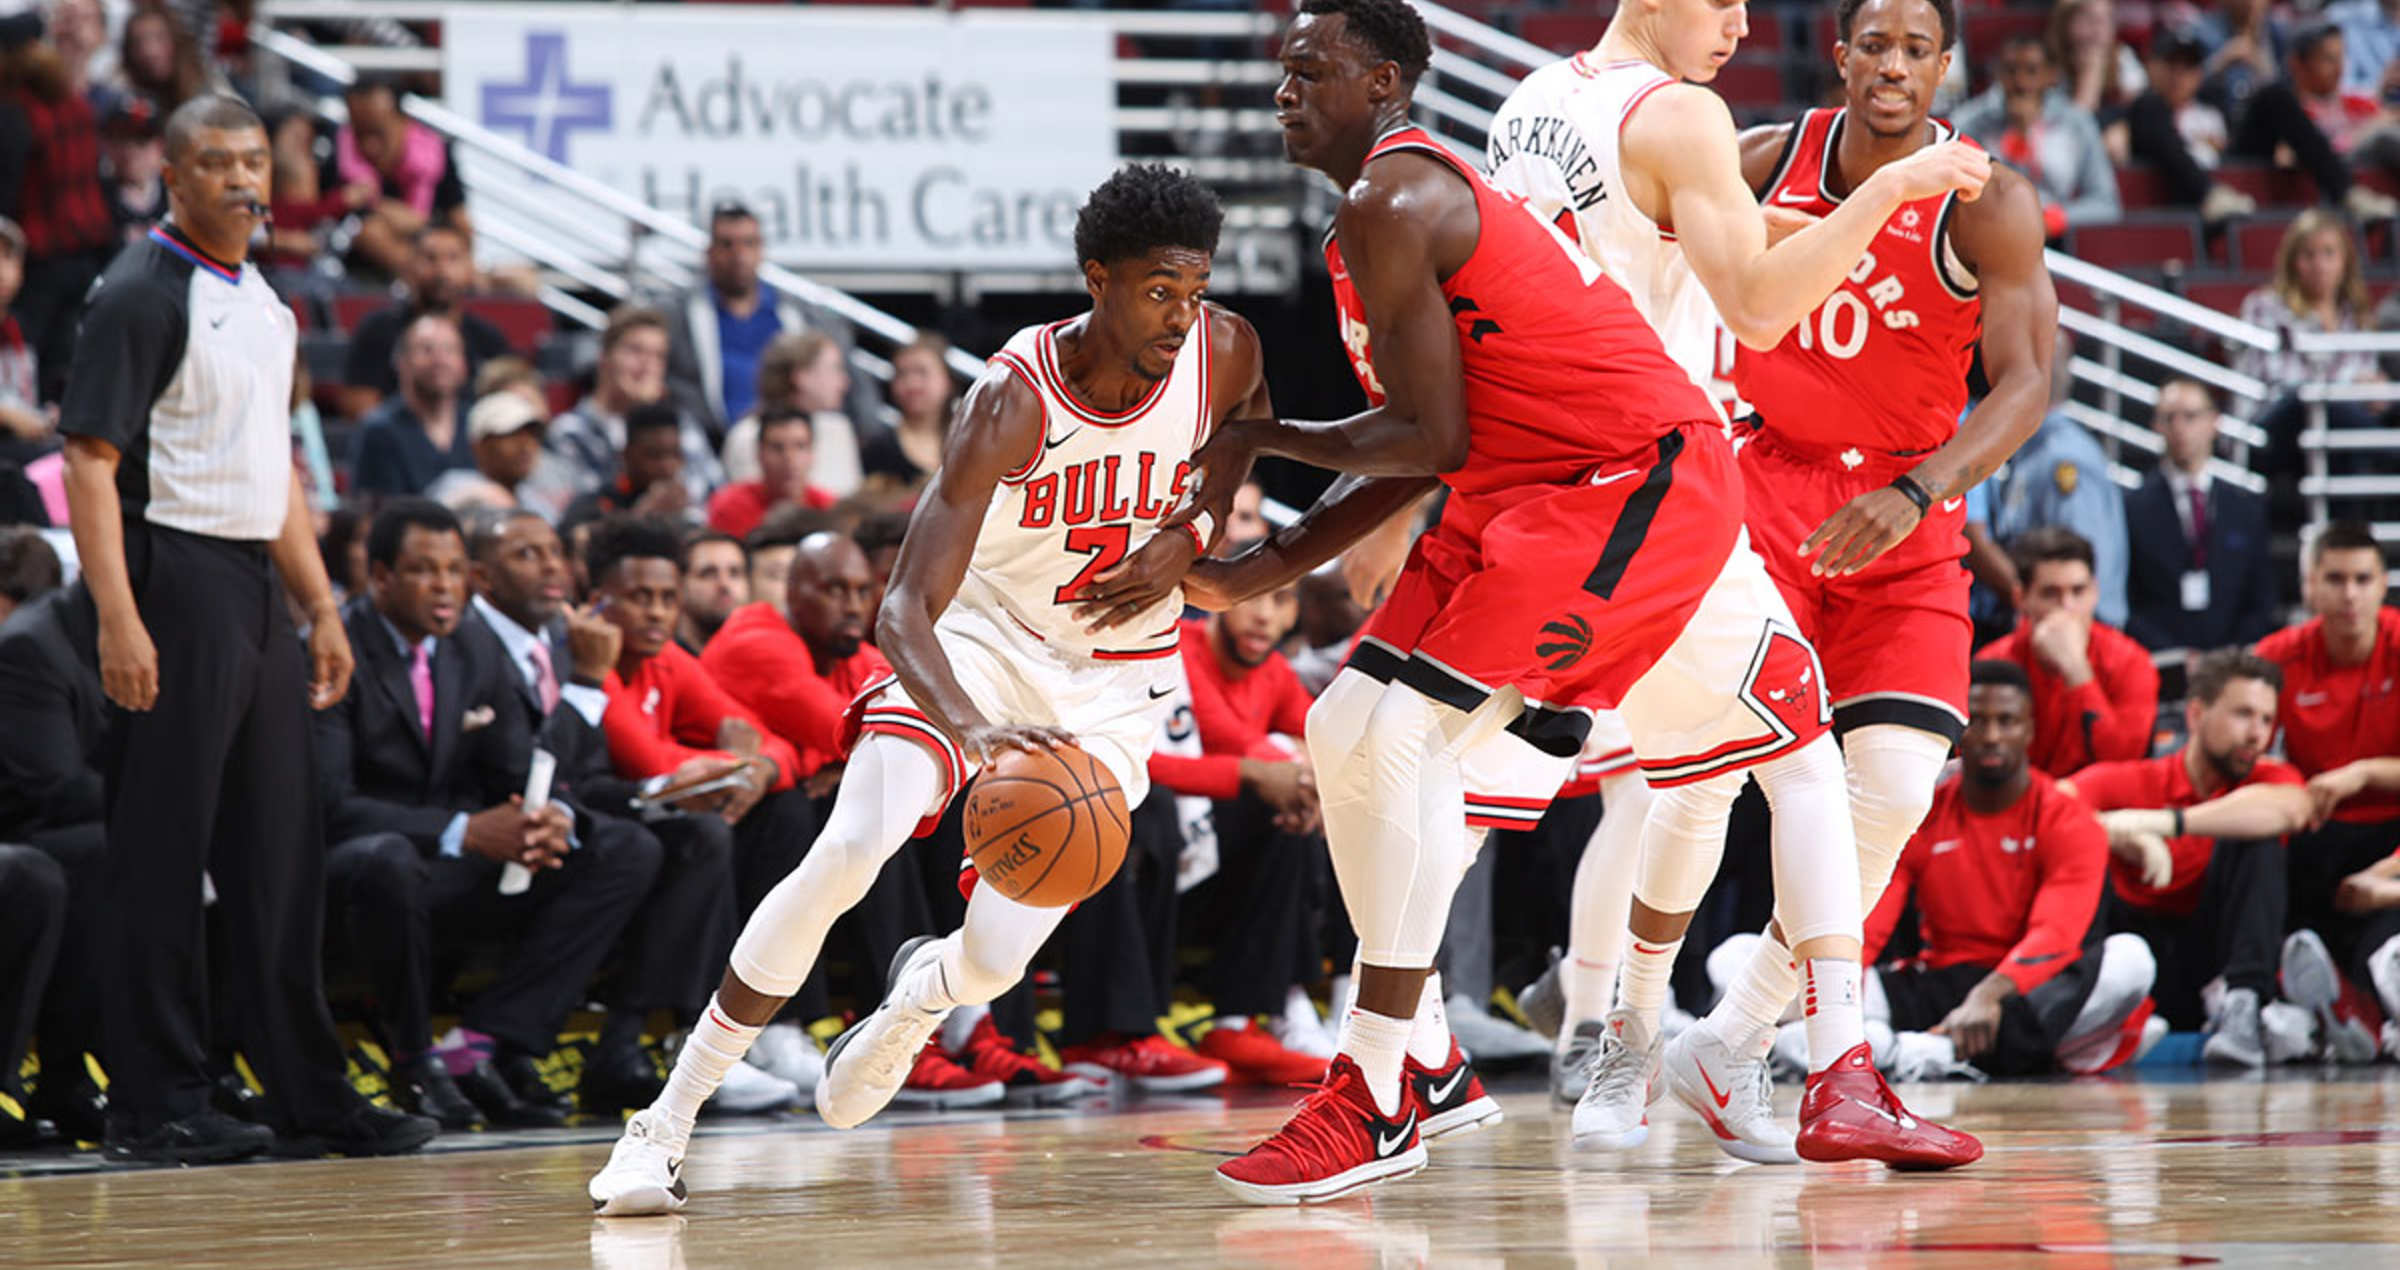 Justin Holiday #7 of the Chicago Bulls moves around a screen by Lauri Markkanen against the Toronto Raptors on October 13, 2017 at the United Center in Chicago, Illinois.